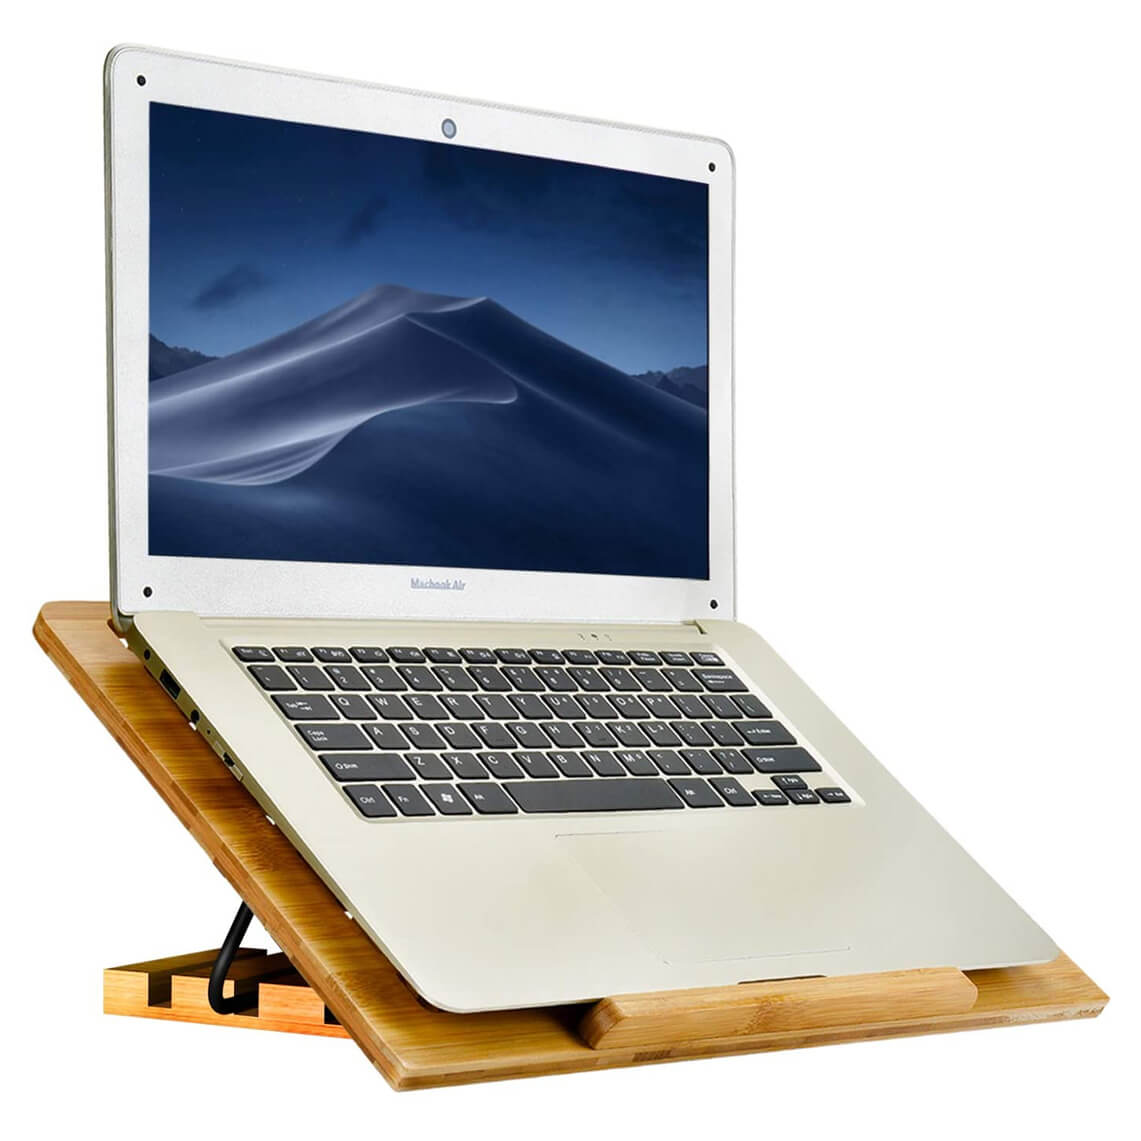 WishACC Bamboo Adjustable Laptop Stand